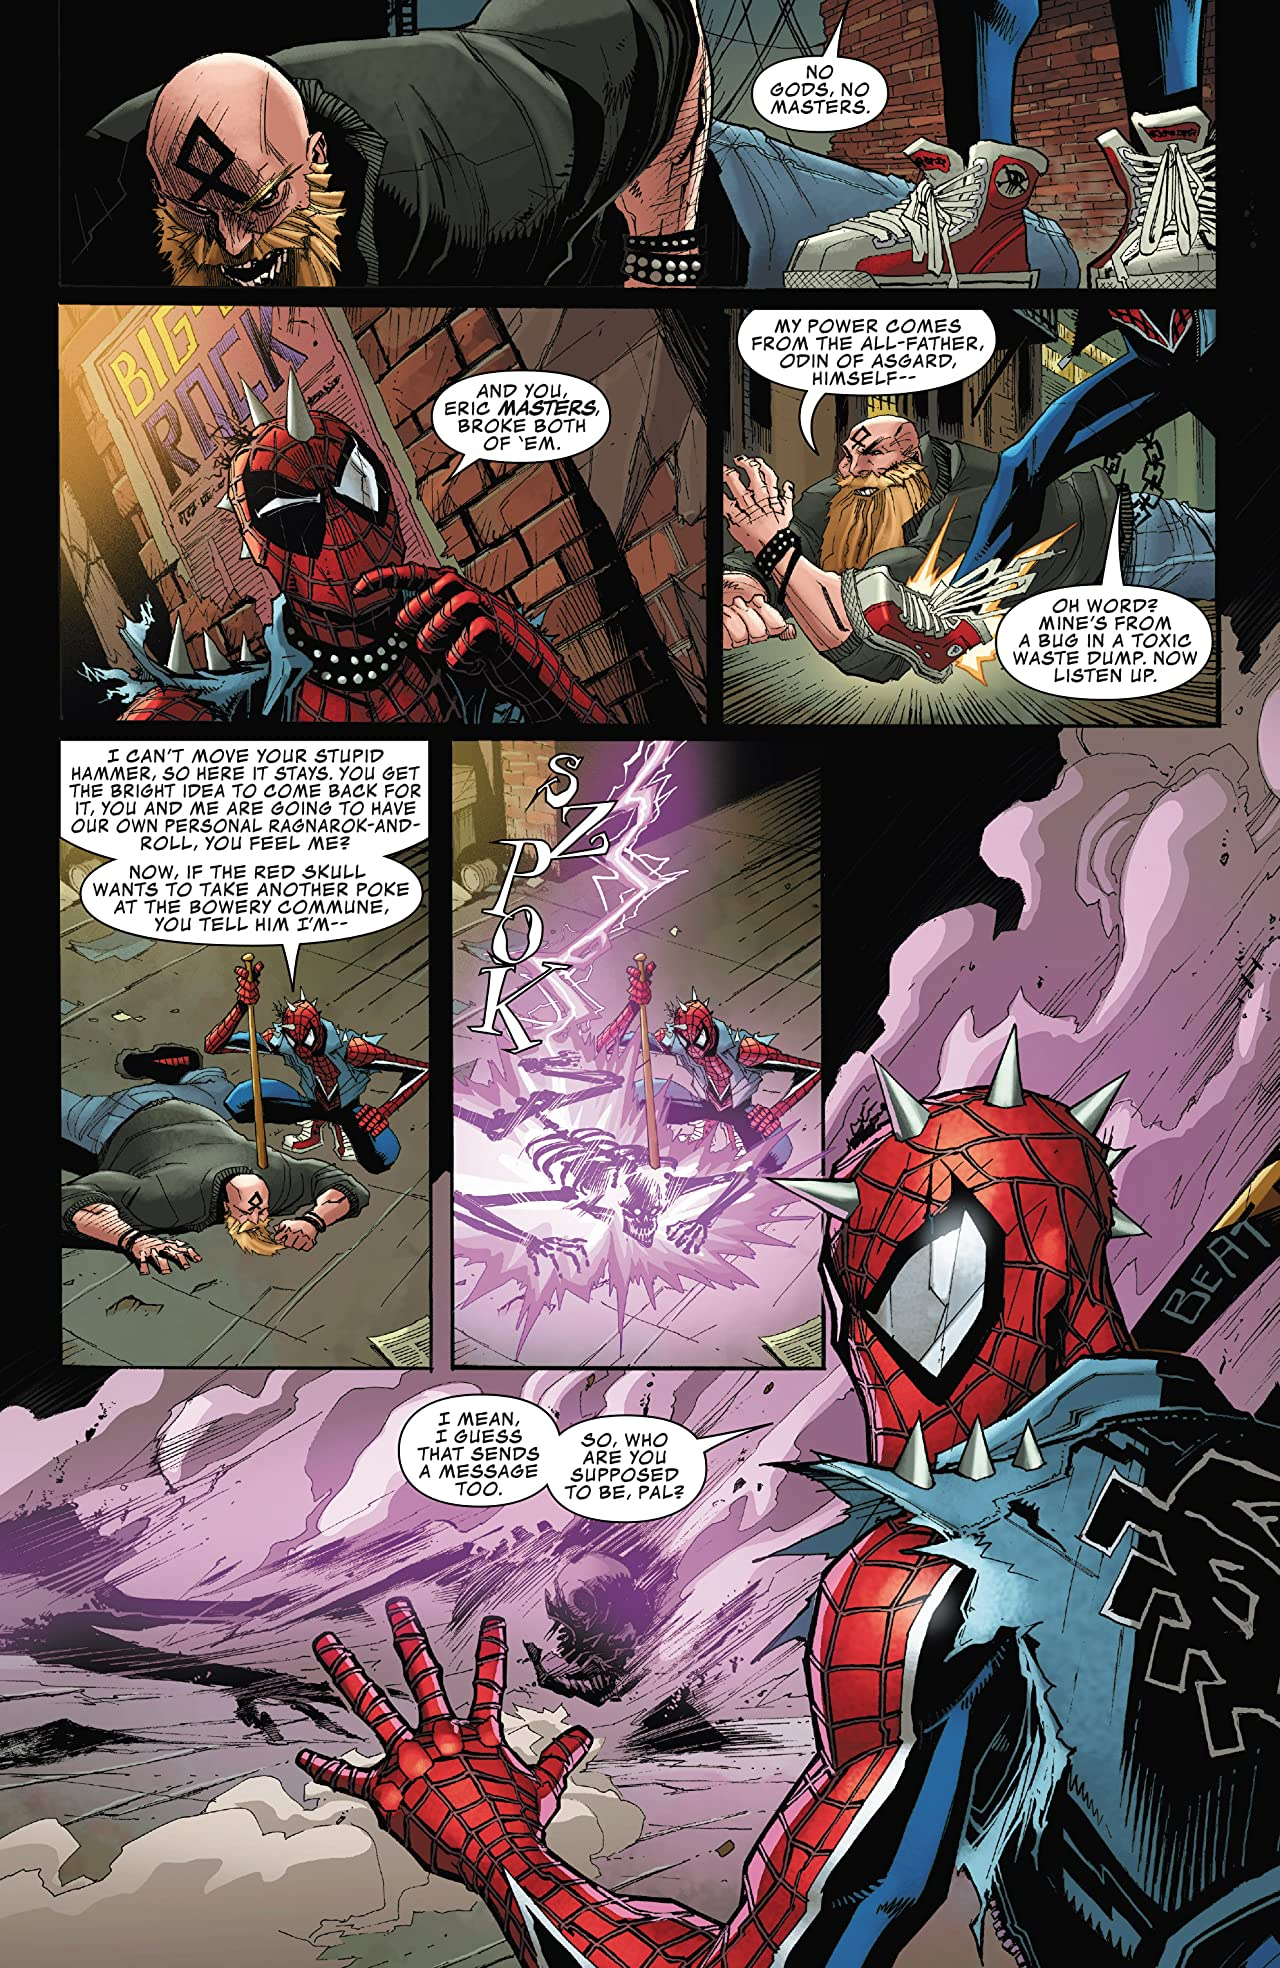 Spider-Geddon: Edge of Spider-Geddon